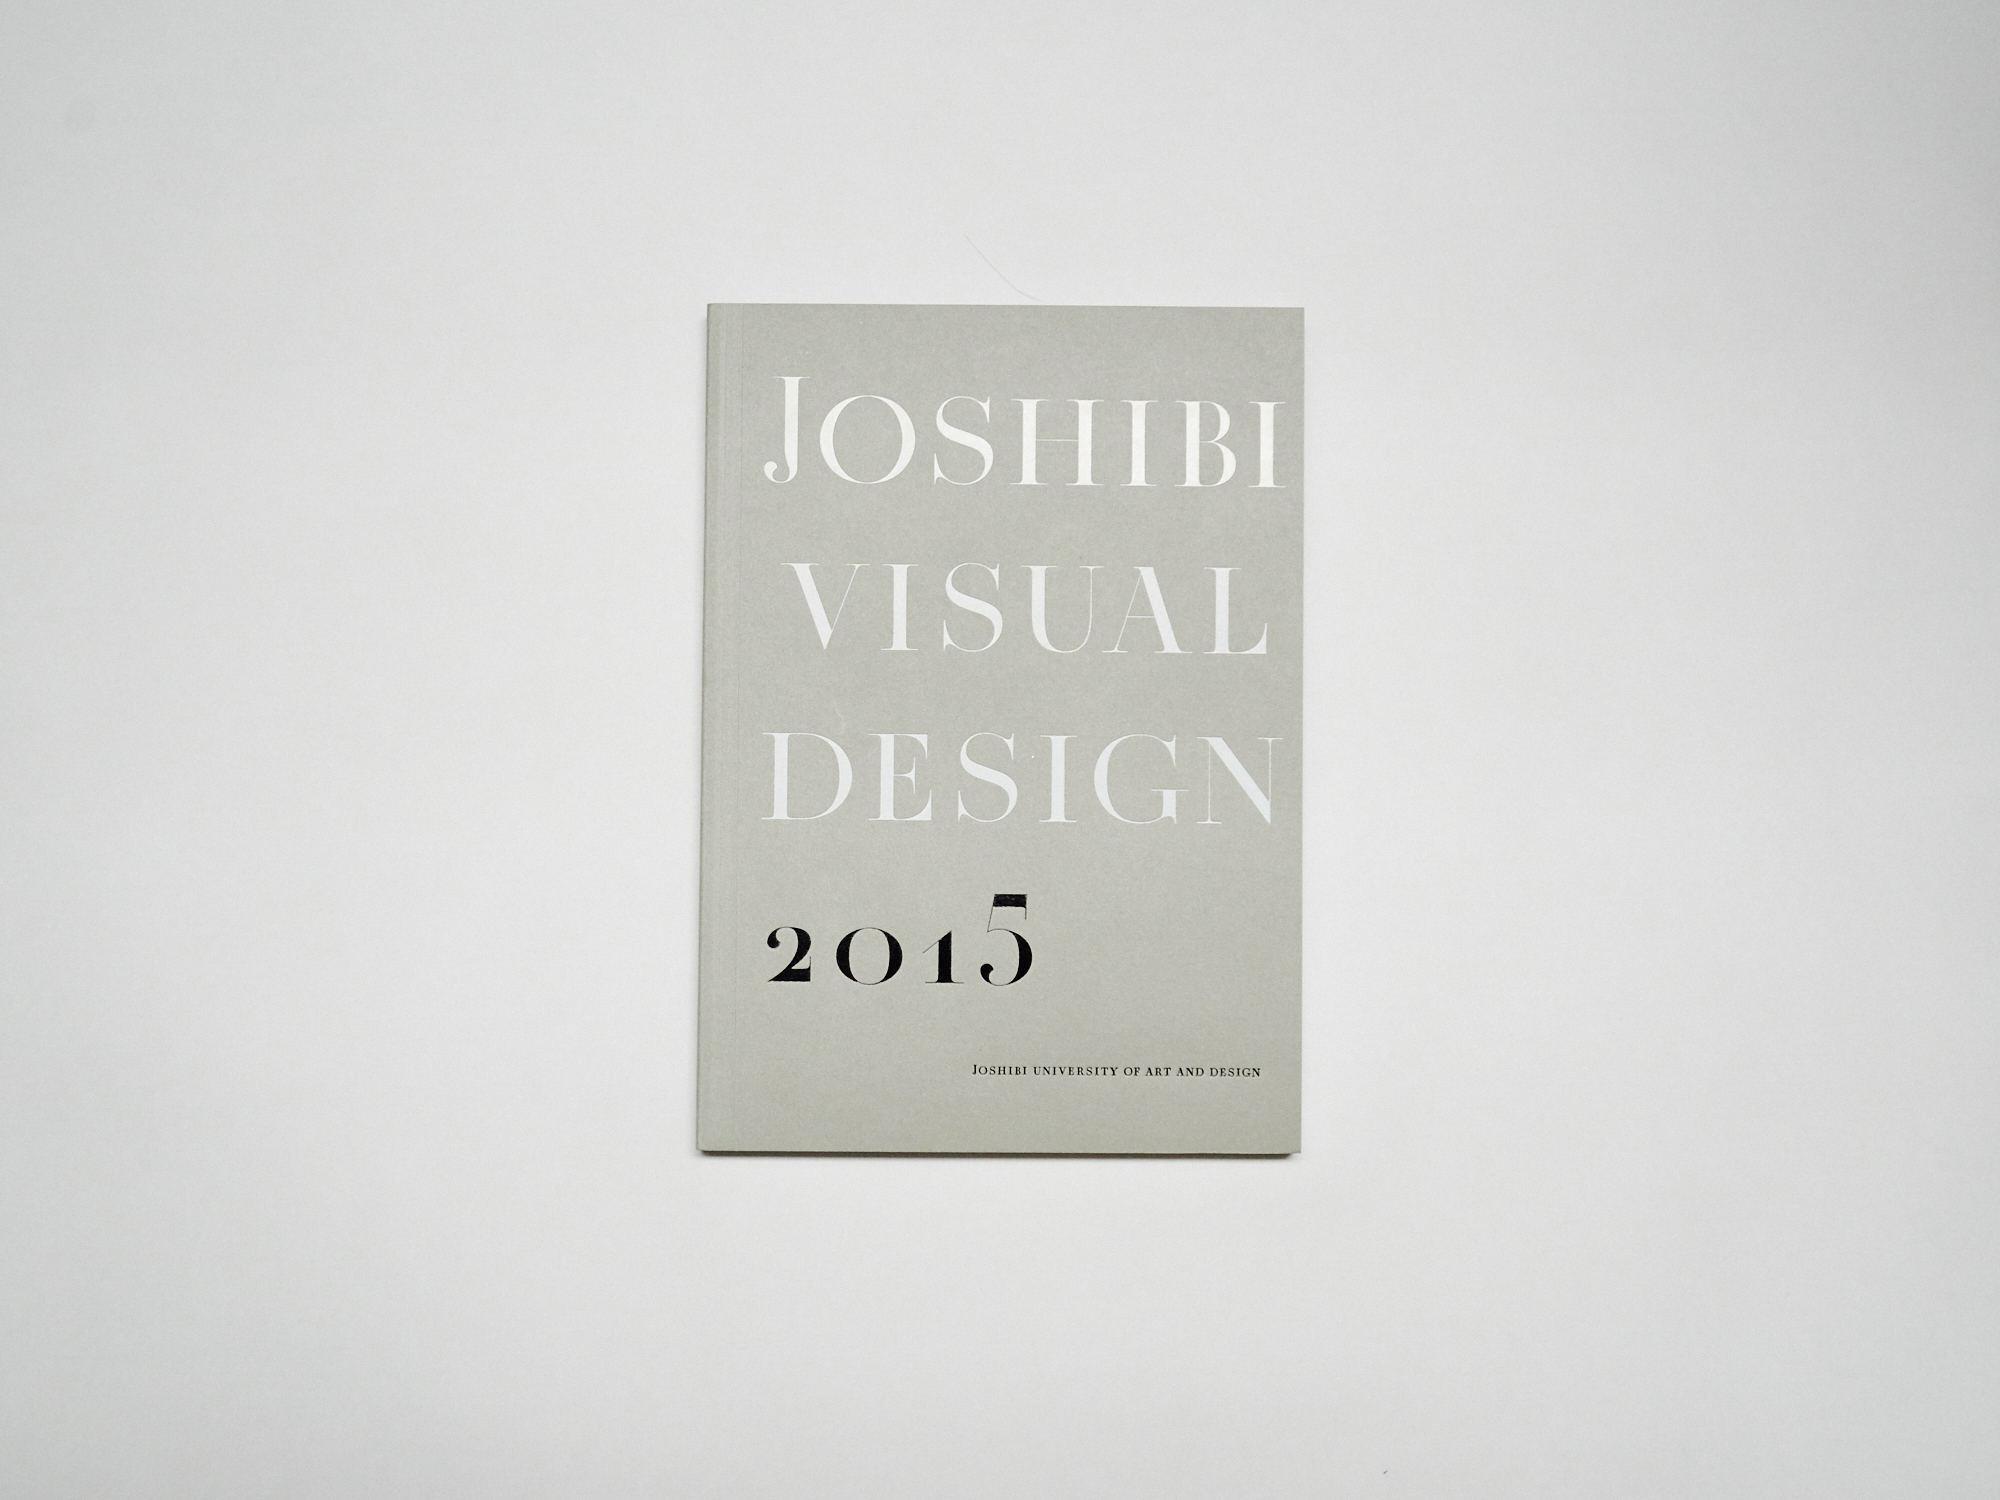 JOSHIBI VISUAL DESIGN 2015